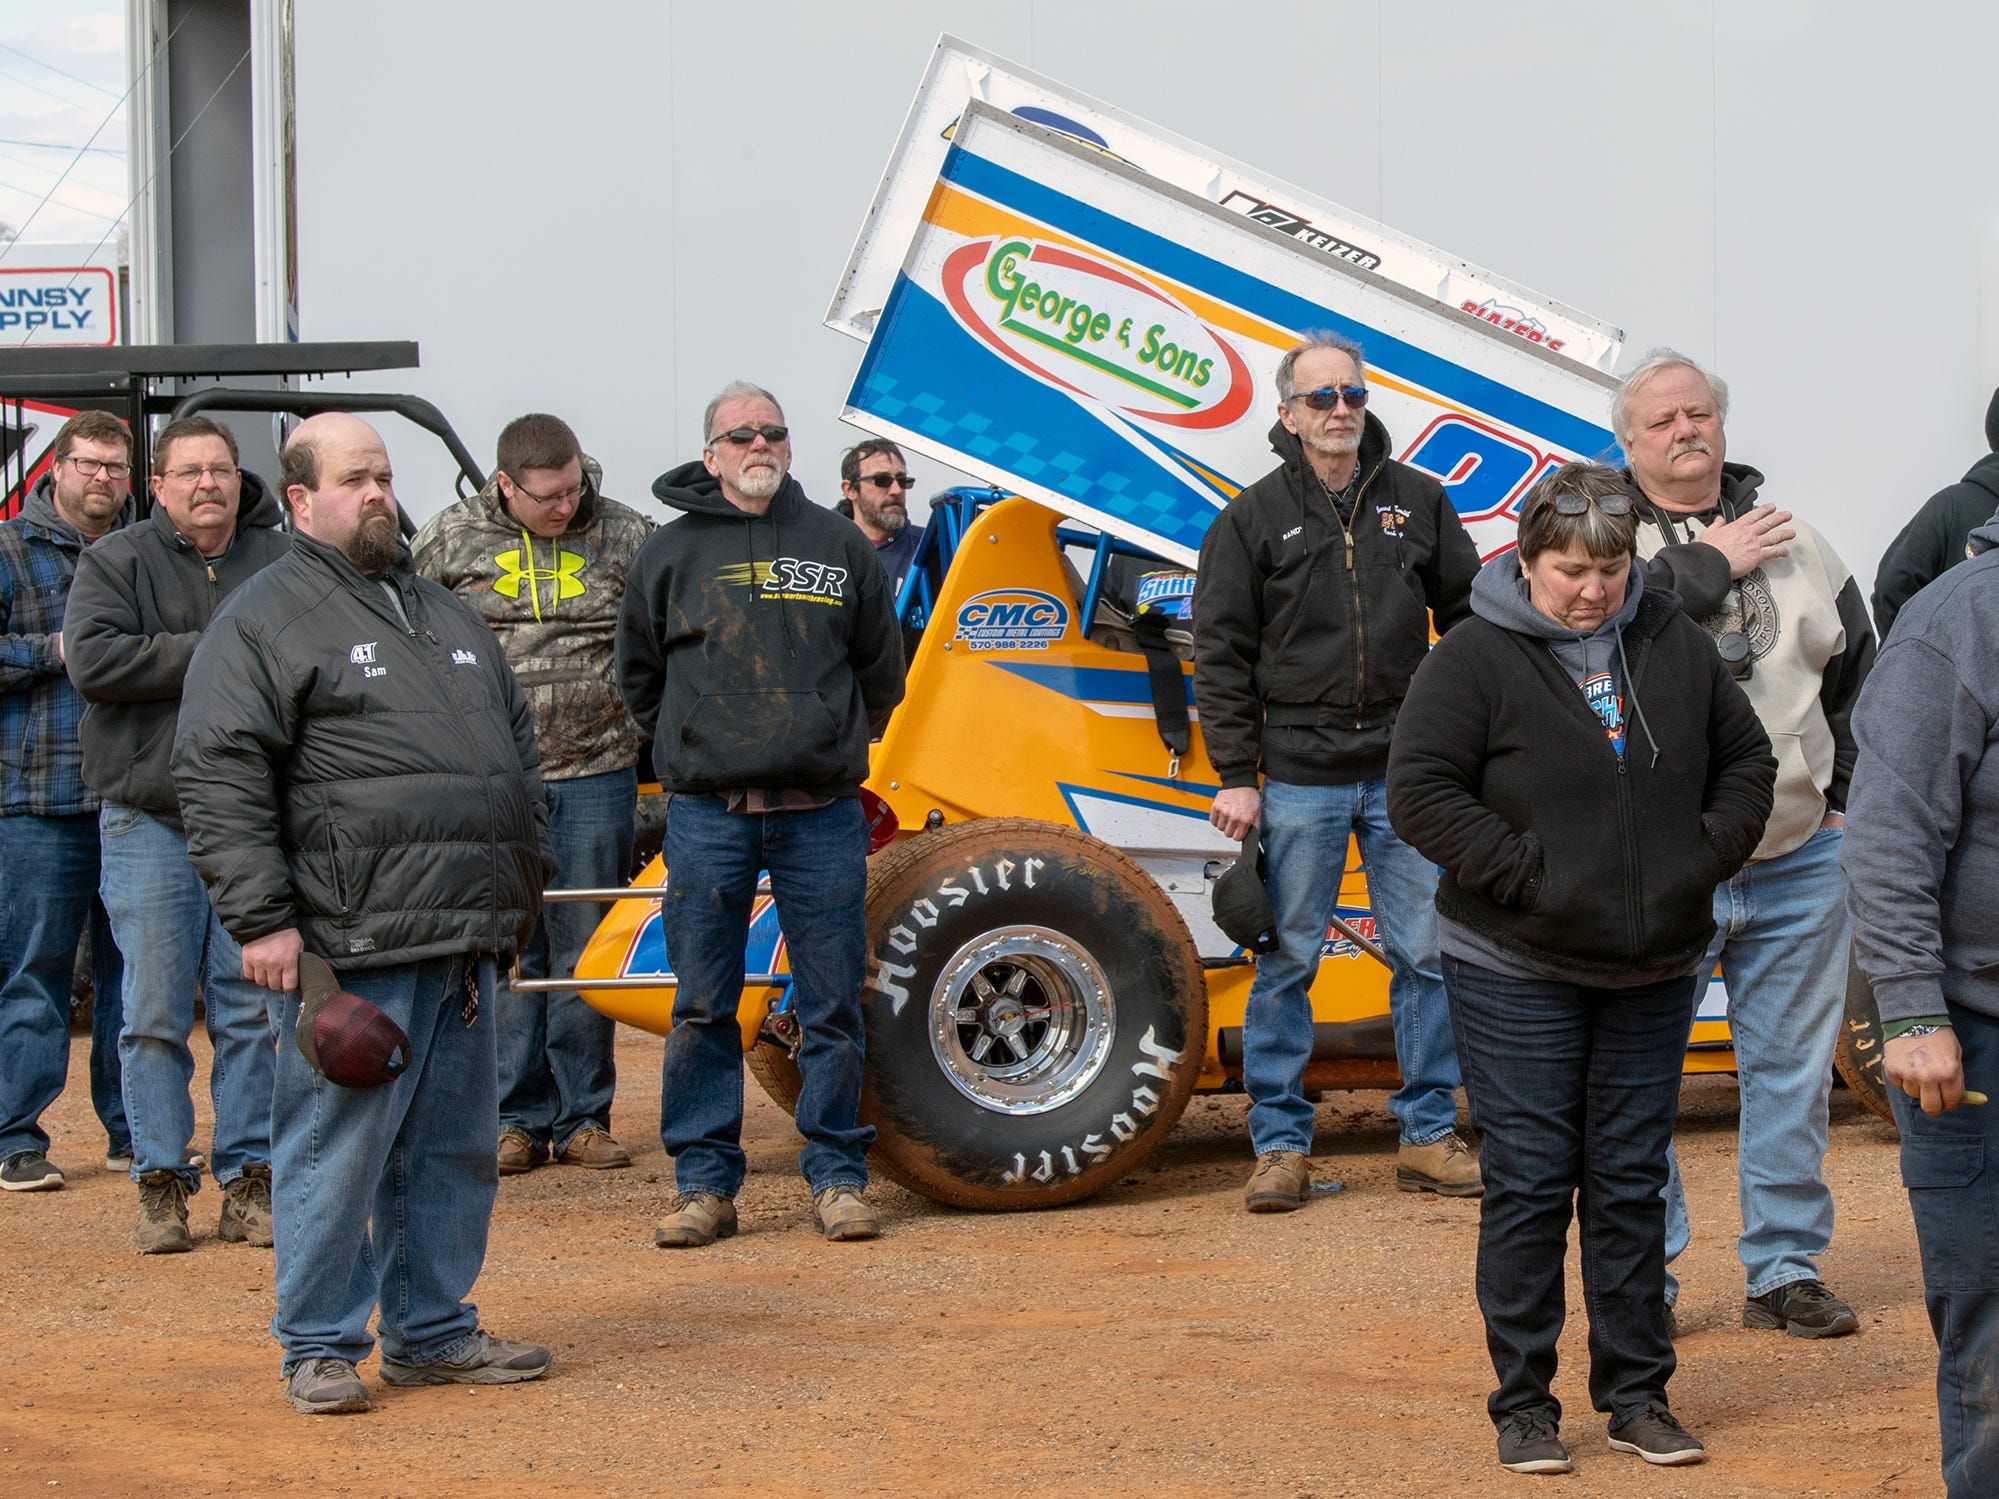 Pit teams pause a moment during the National Anthem before the Williams Grove season opener for 410 sprints Sunday March 17, 2019.